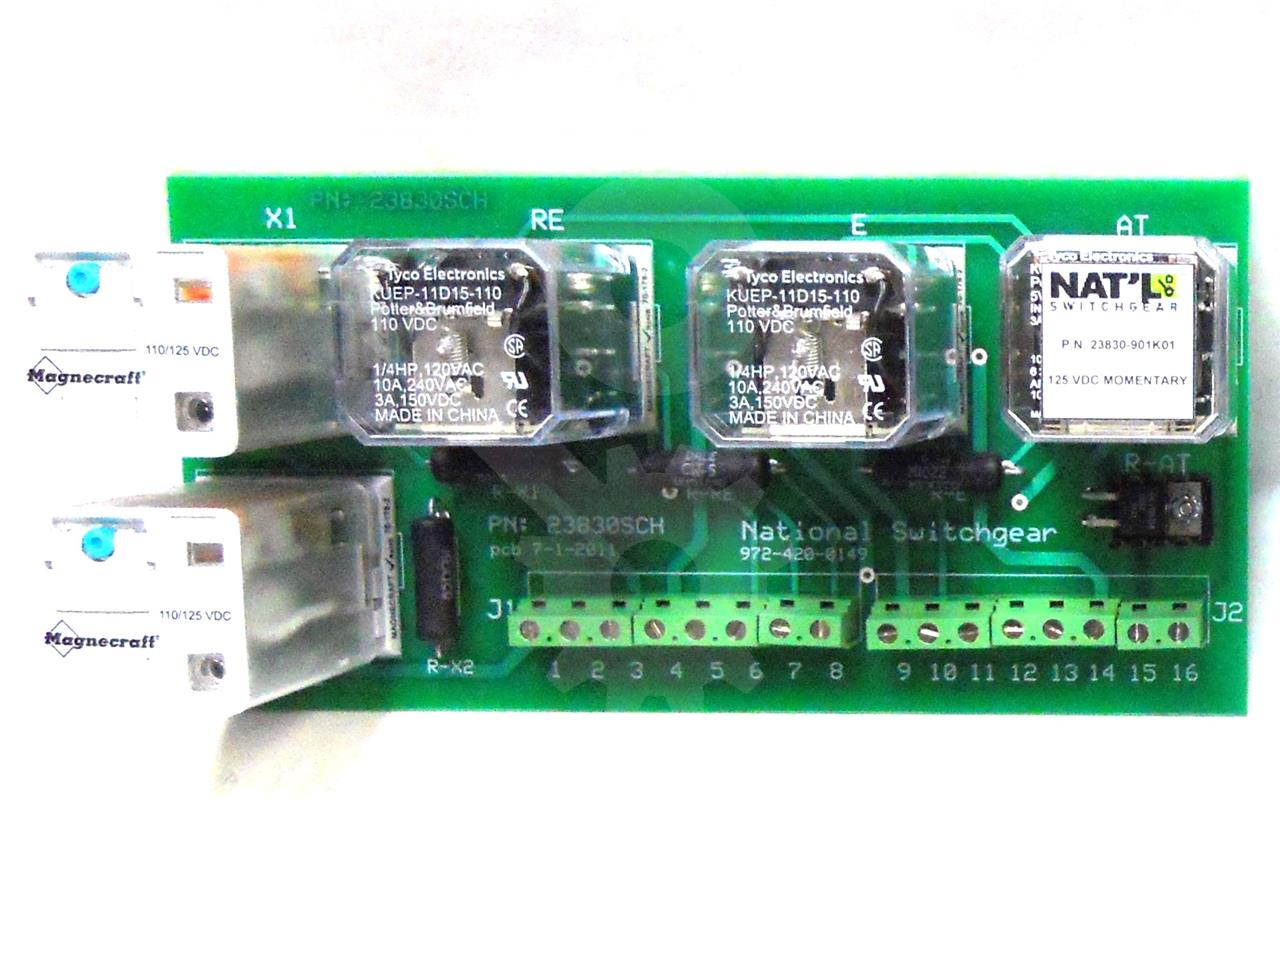 National Switchgear Nss Aep Controller Circuit Board China Catalog